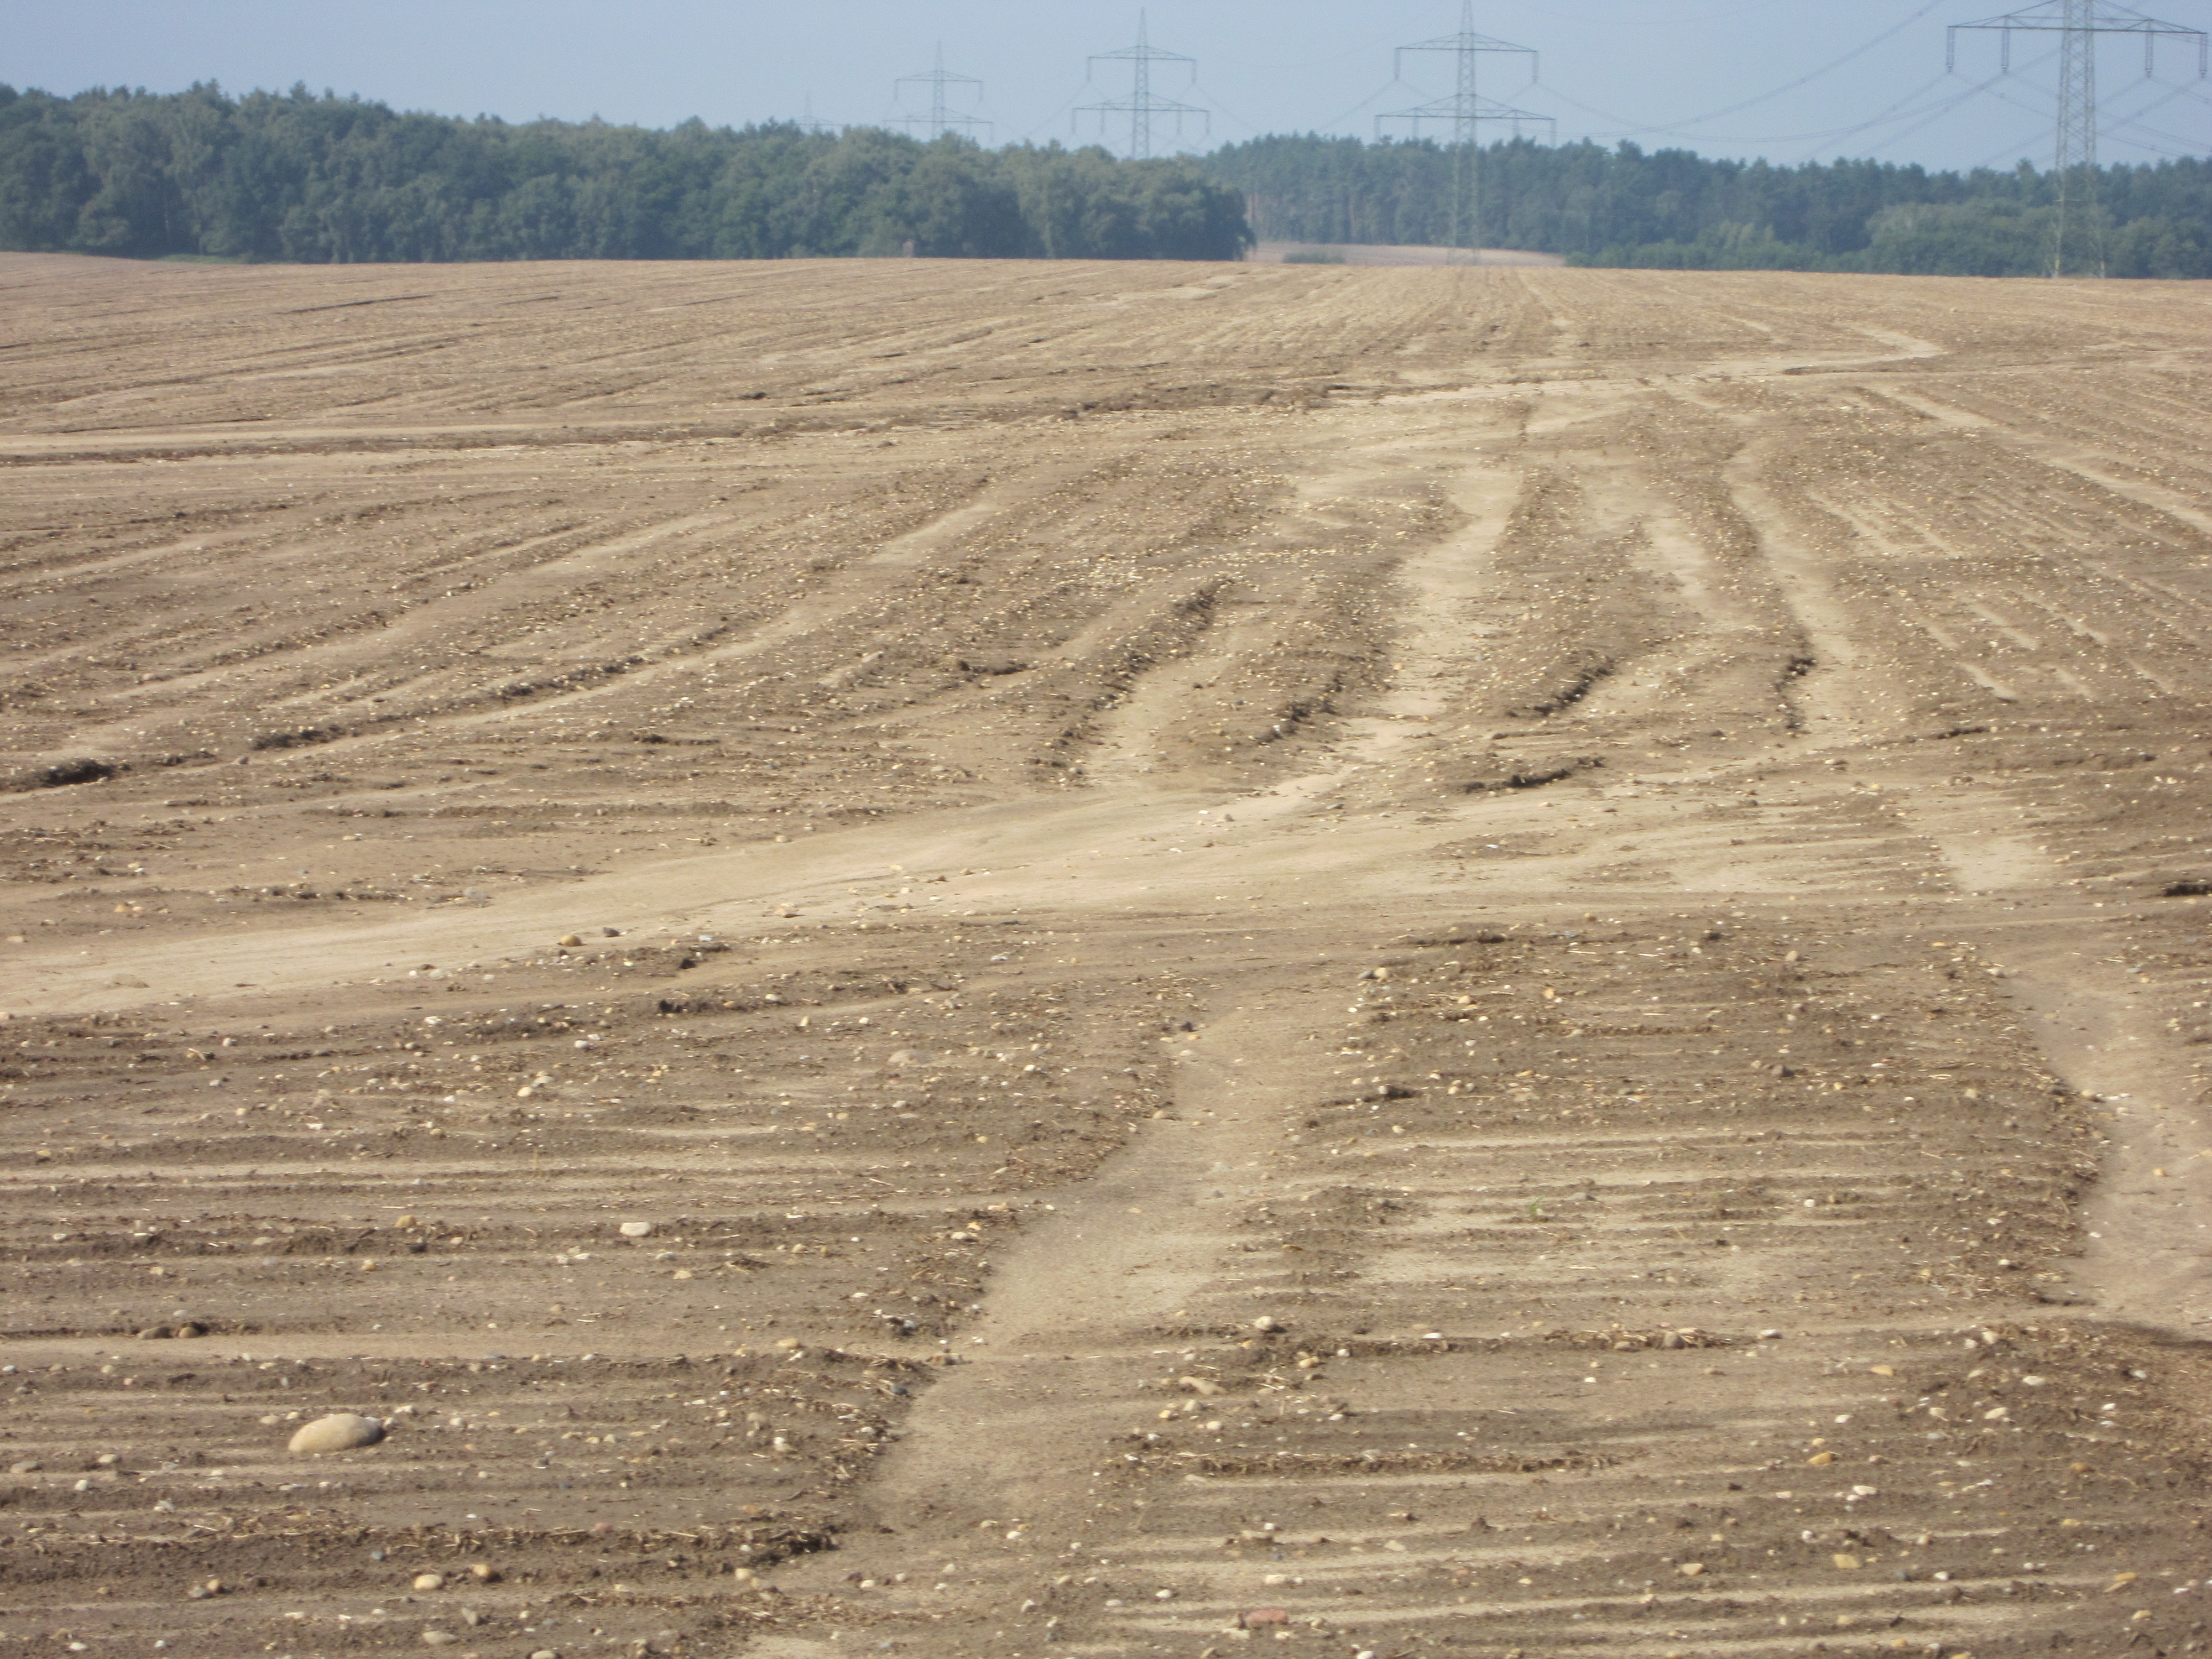 processes of soil erosion Wind erosion is caused by a strong, turbulent wind blowing across an  unprotected soil surface that is smooth, bare, loose.